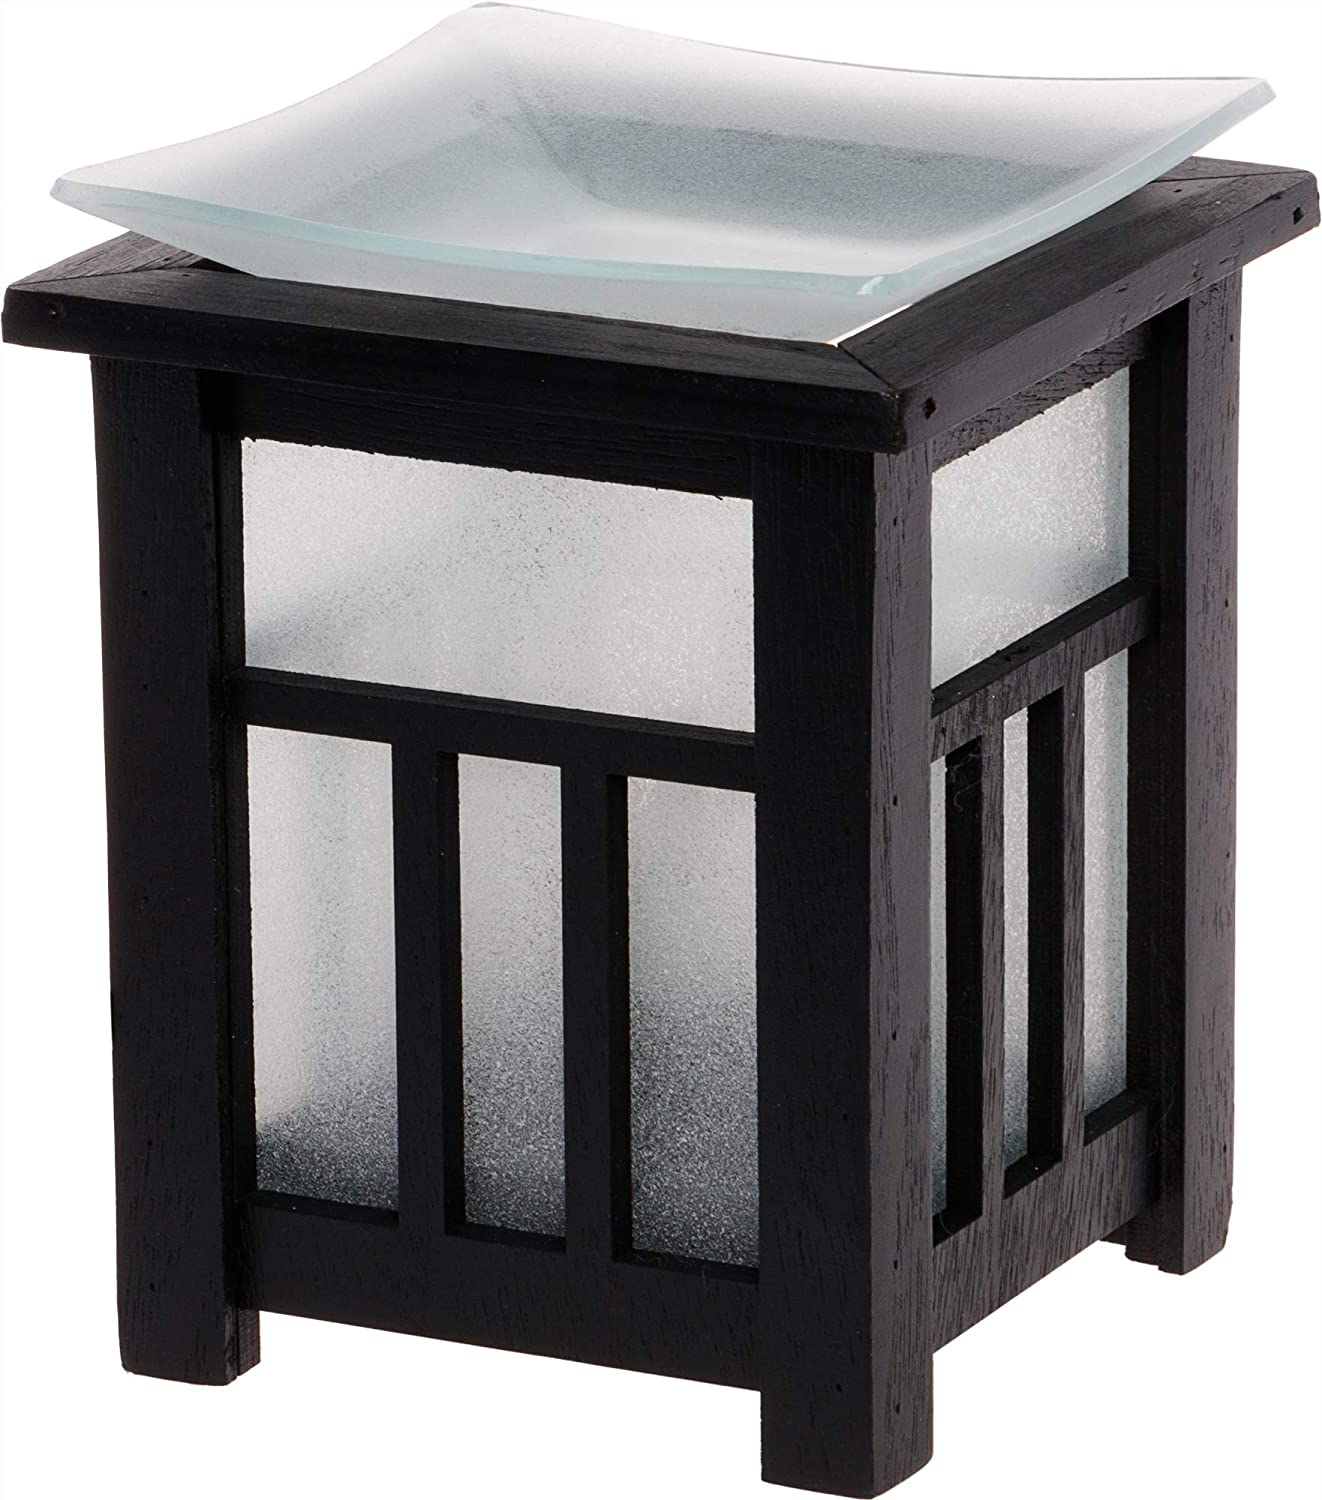 Mindful Design Frosted Pagoda Wax Warmer - Asian Inspired Plug-in Wax Melter Air Freshener and Night Light, Ideal for Bedrooms, Bathrooms, Living Rooms